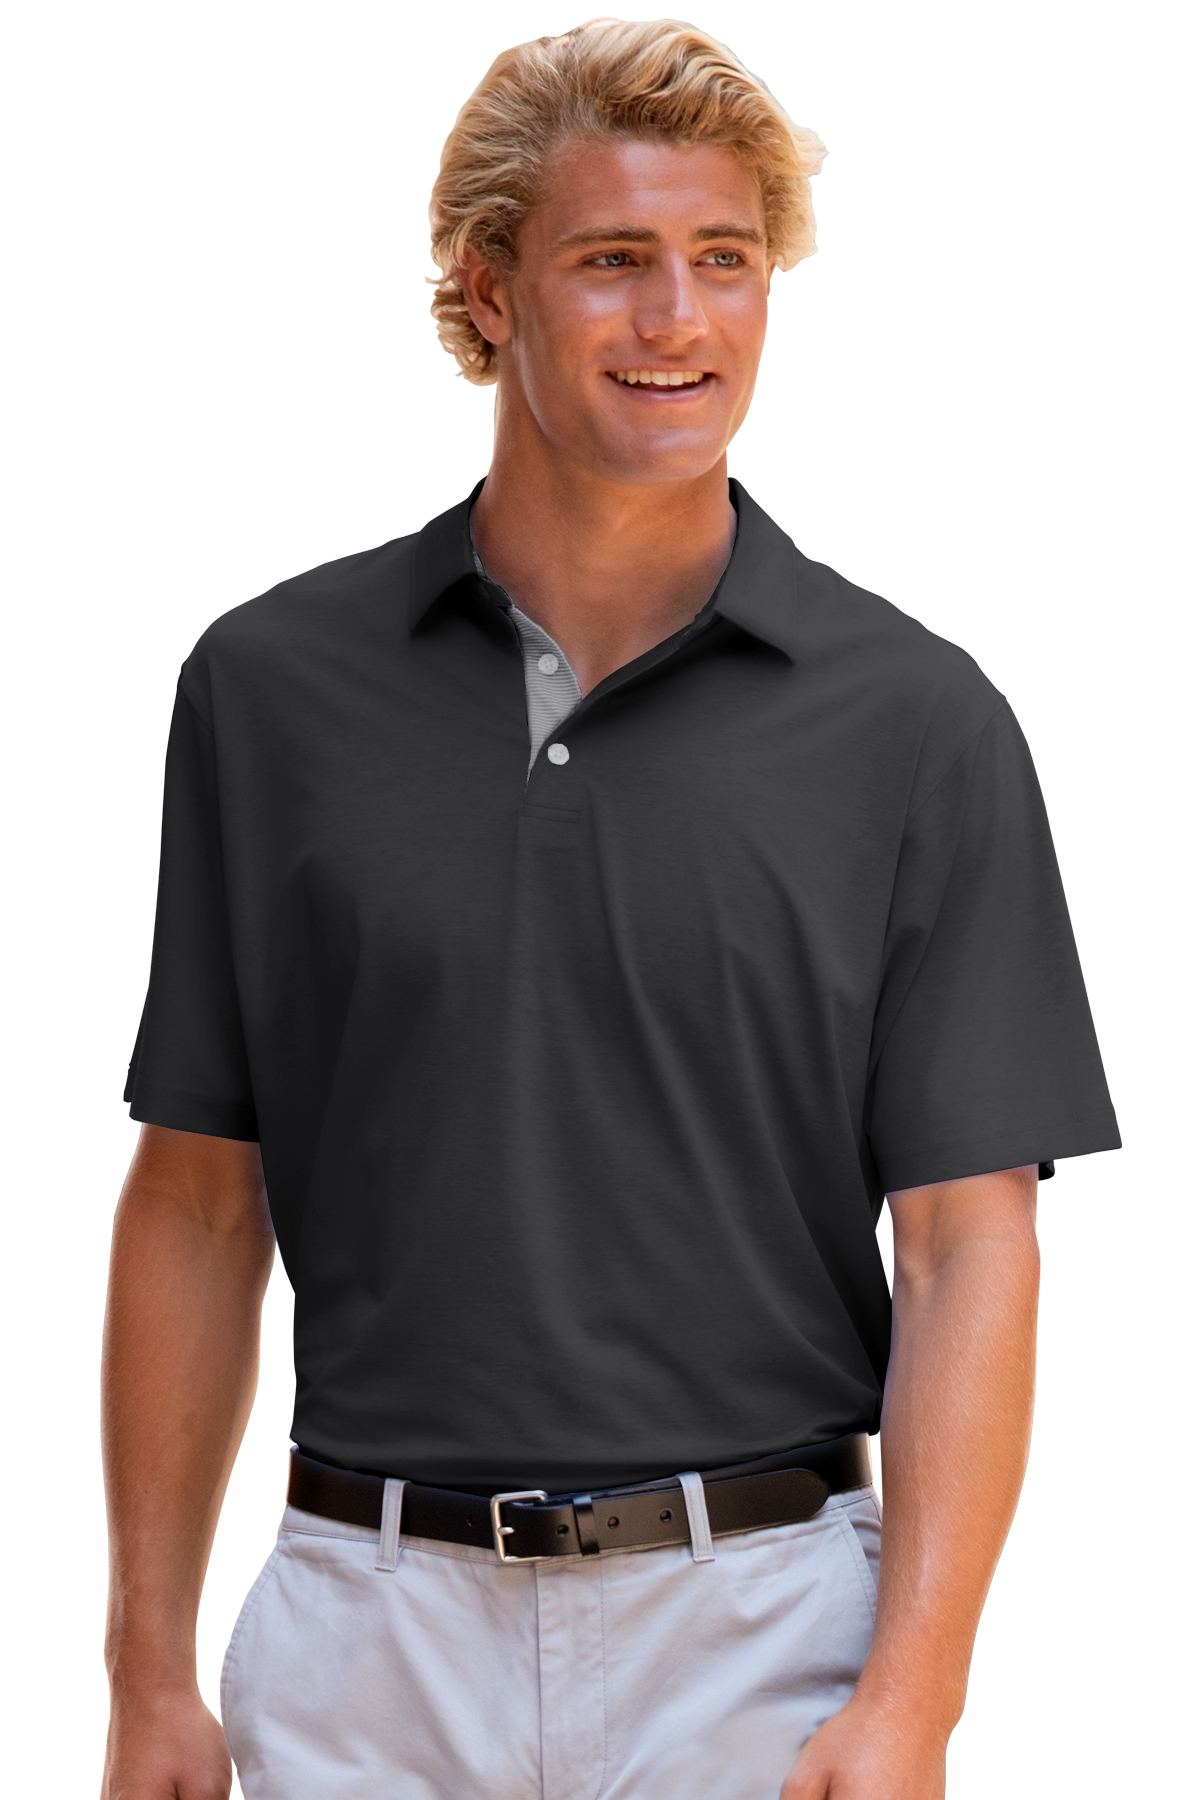 Vantage 2460 - Men's Vansport™ Pro Signature Polo